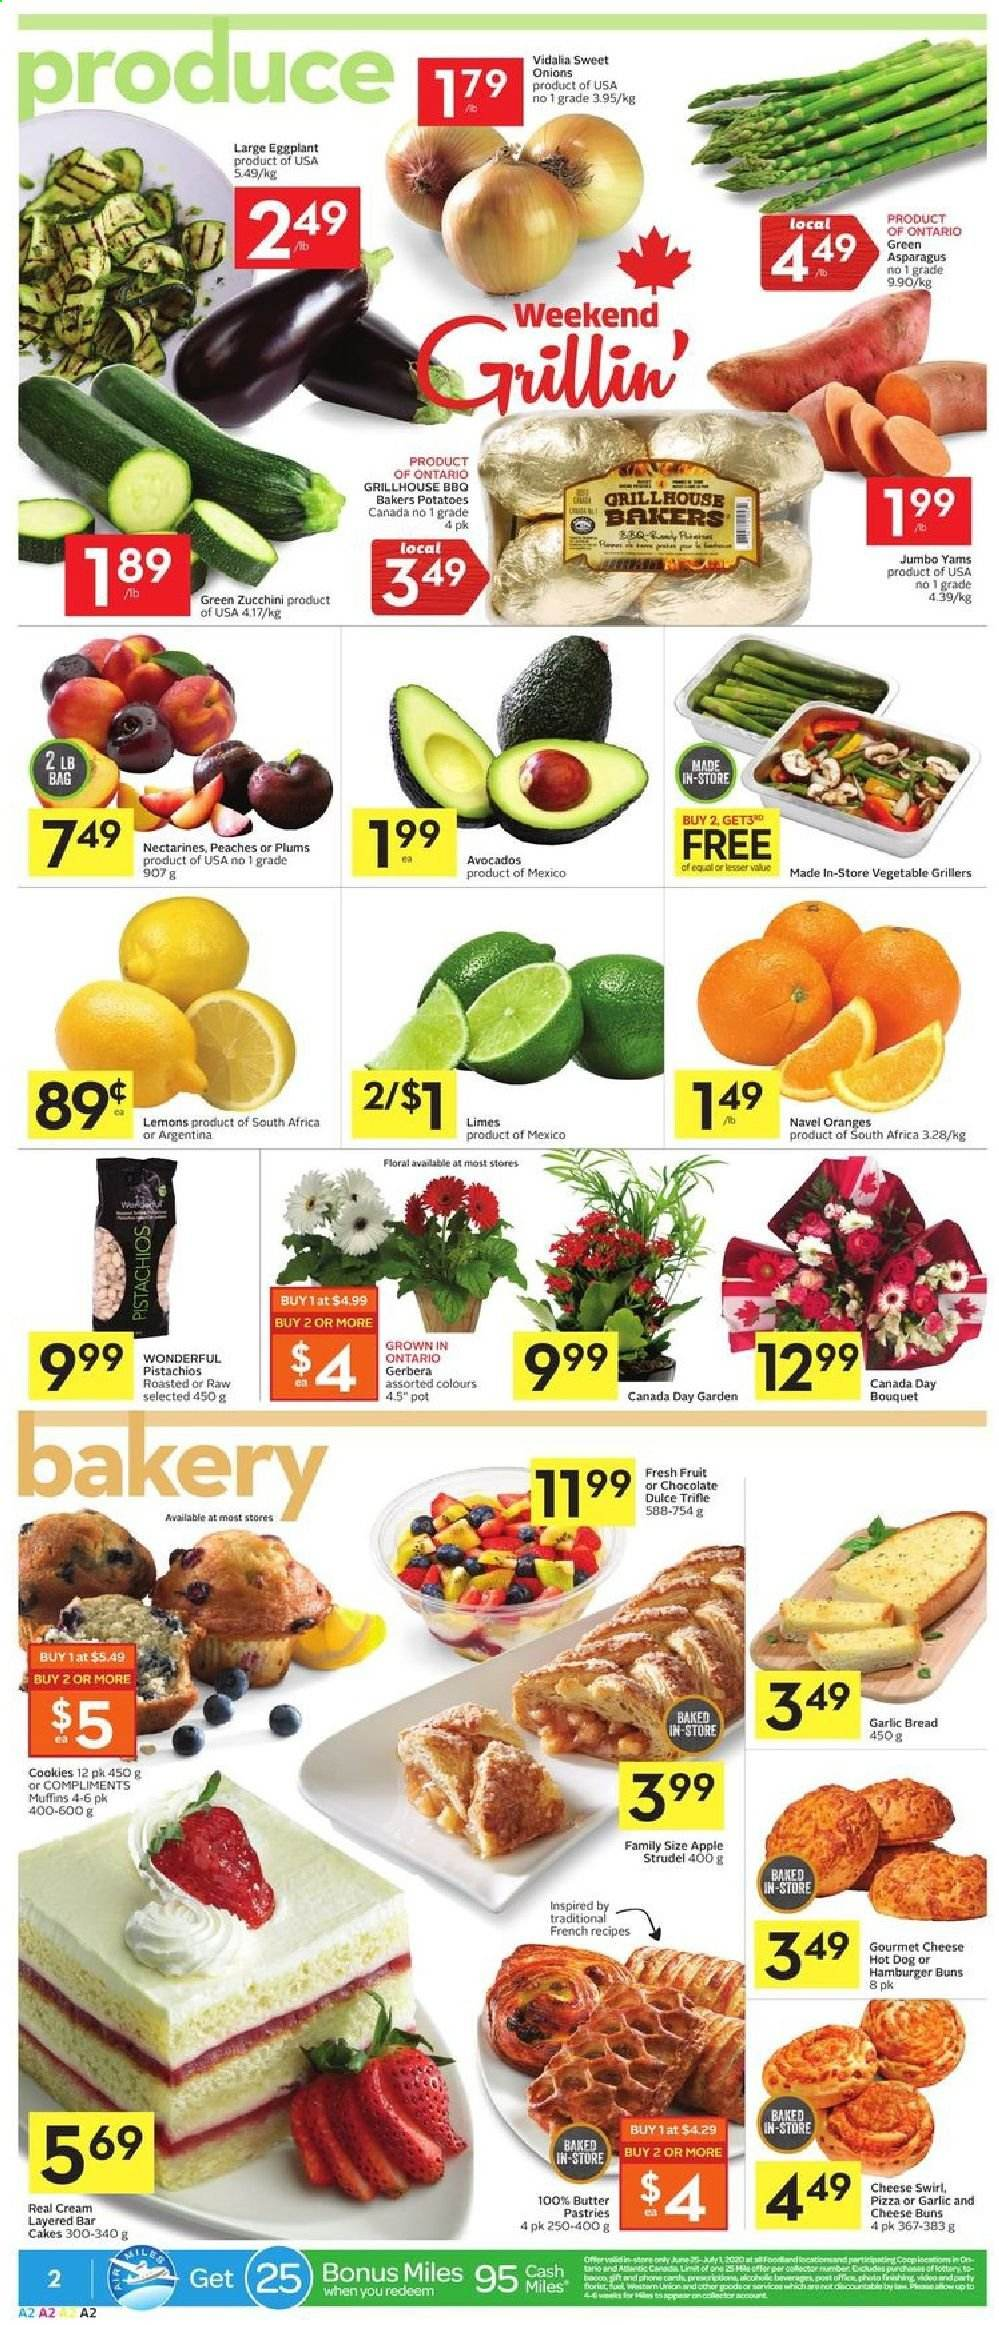 Foodland Flyer  - June 25, 2020 - July 01, 2020. Page 2.